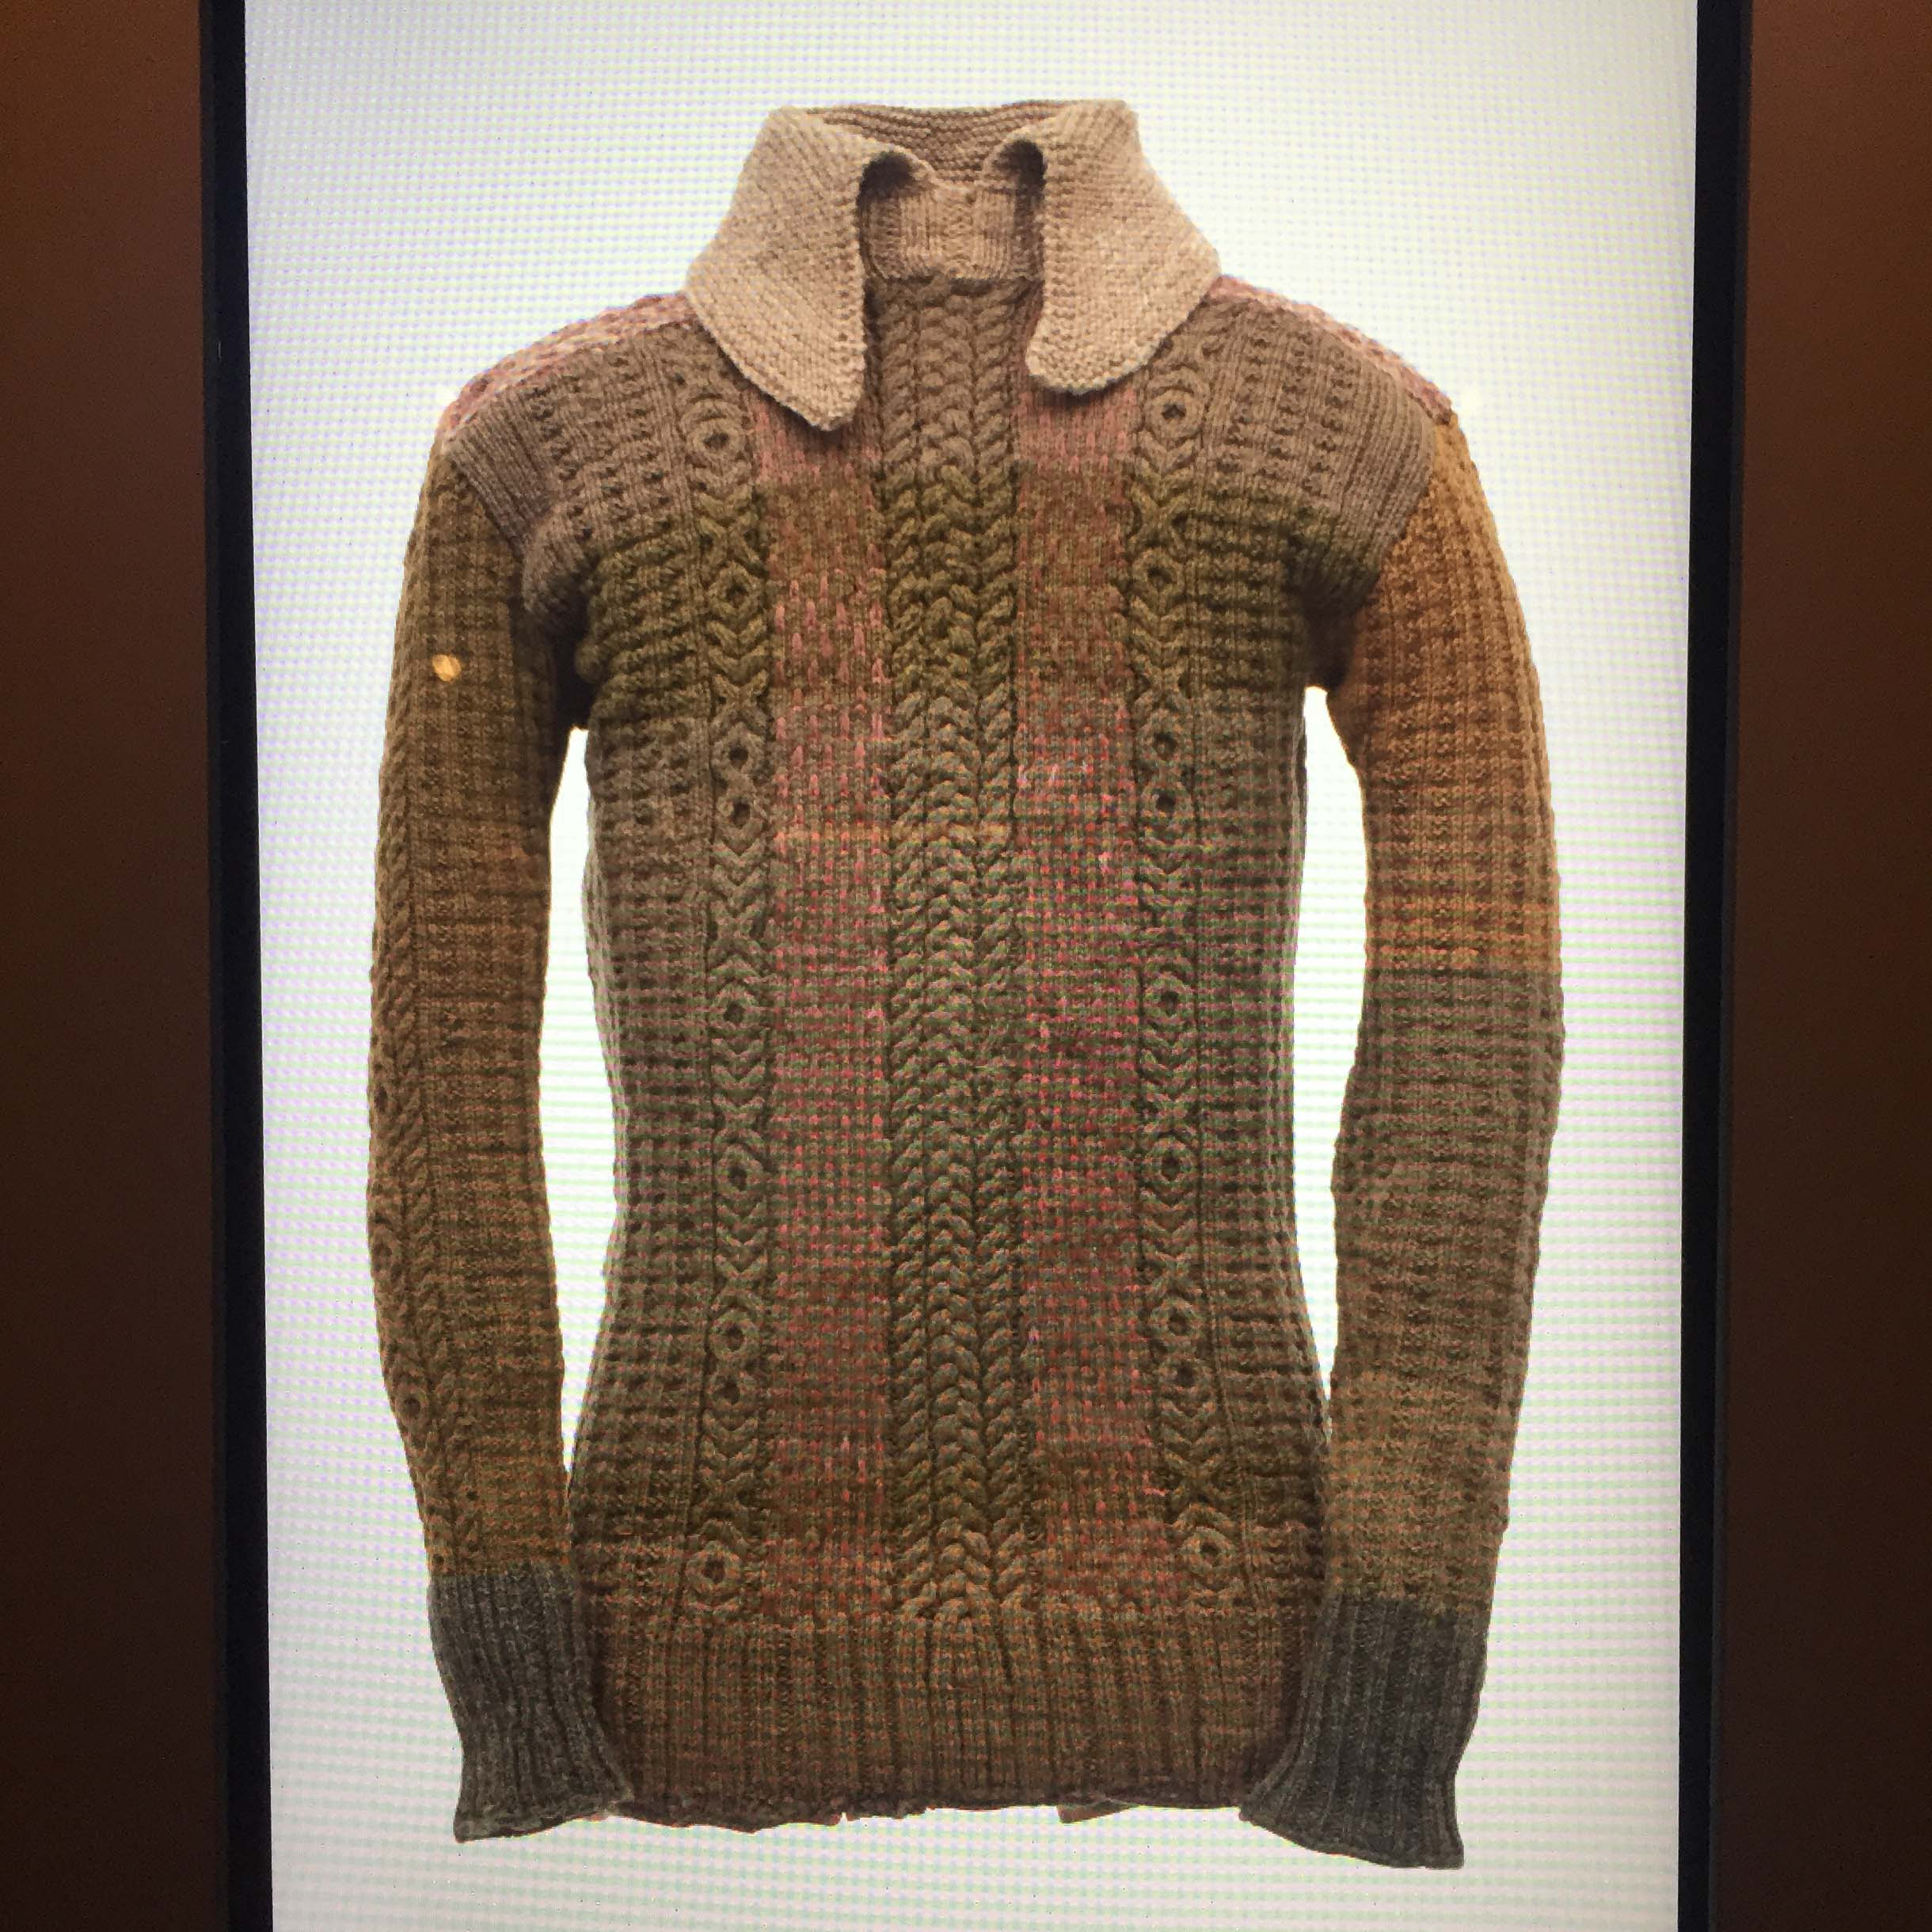 Knitted by Sergeant Duncan Carseldine - at the Australian War Memorial.